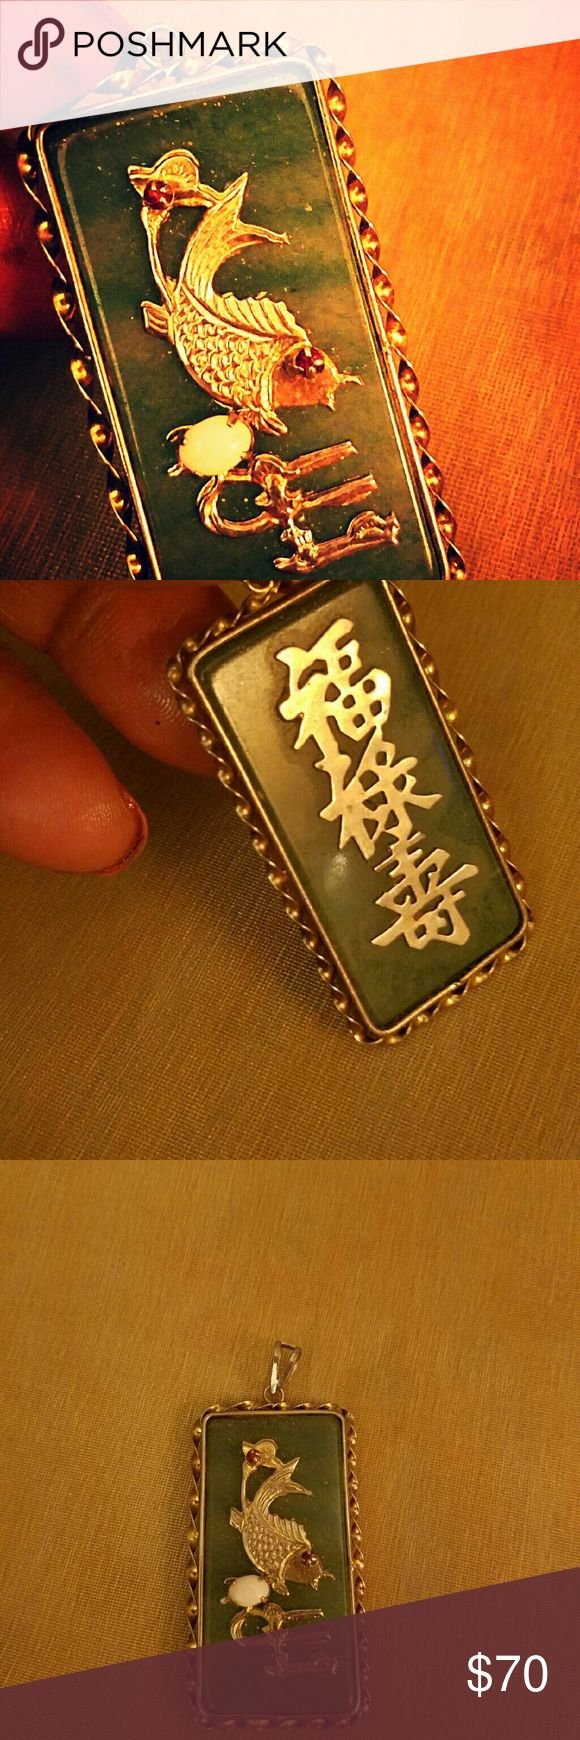 Jade pendant Beautiful! Chinese pendant.  You can see the back of the pendant has a Chinese inscription.  Does anyone know what it means??? Please let me know. Two rubies with a white opal, Sterling silver trimming with gold plated Jewelry